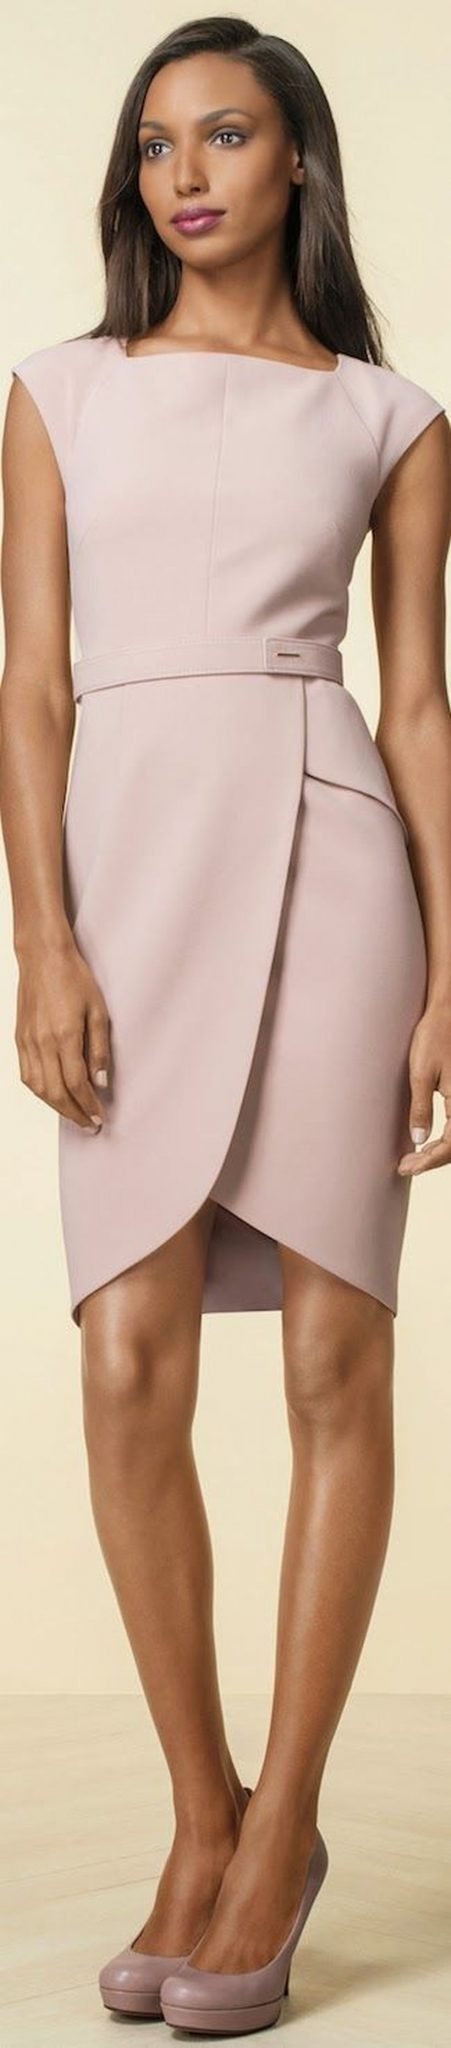 Fashionable formal work dress outfits ideas in 2017 10